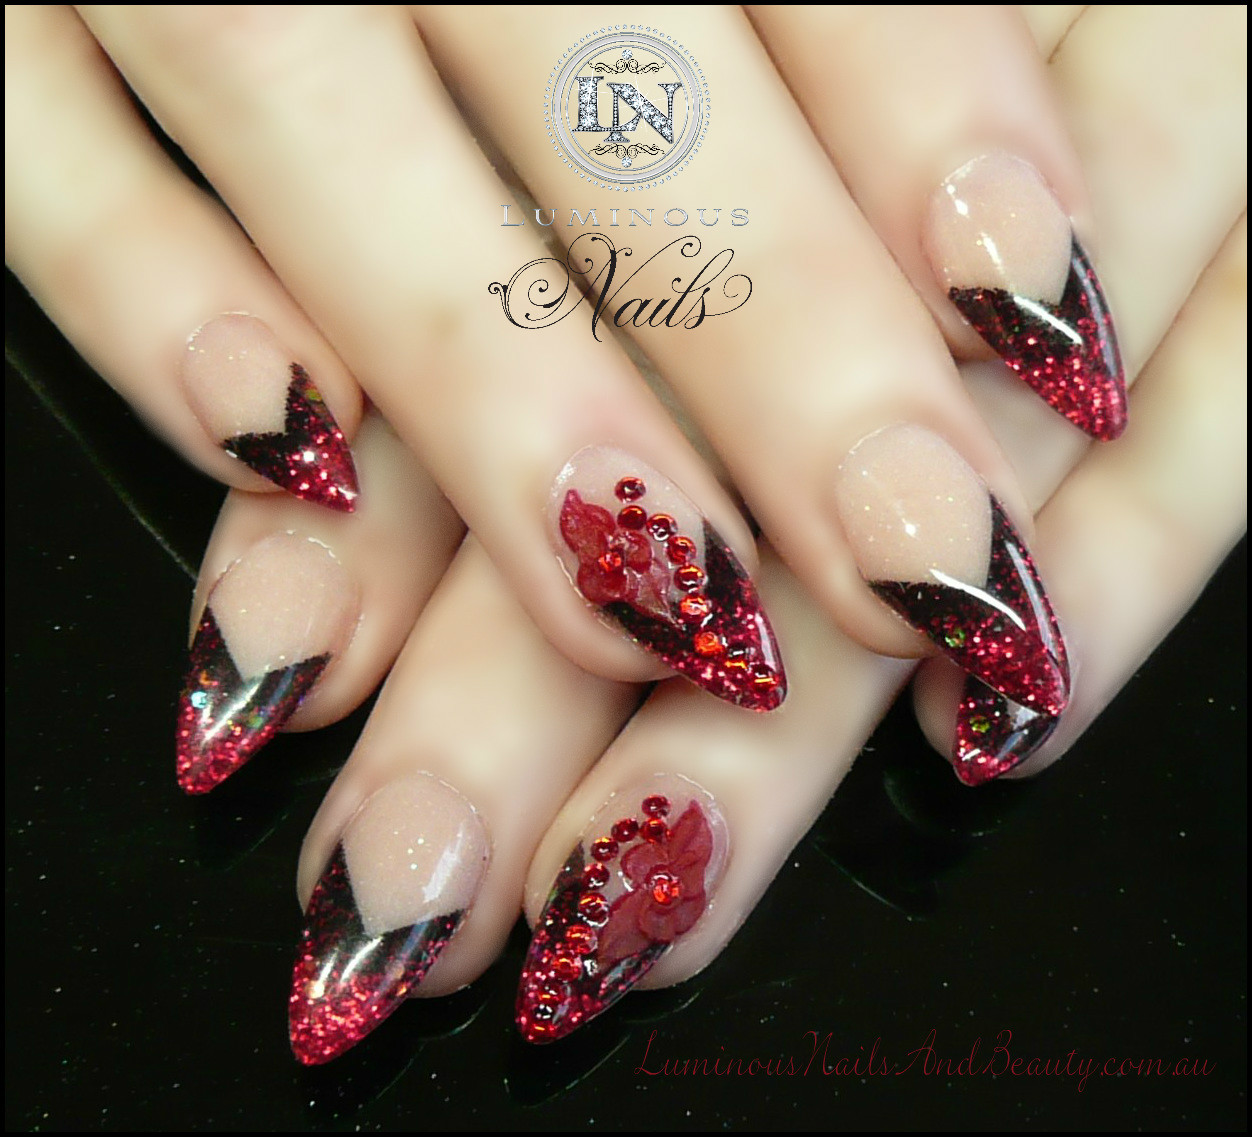 Nails Art Black And Red Stilettos: Luminous Nails: February 2013